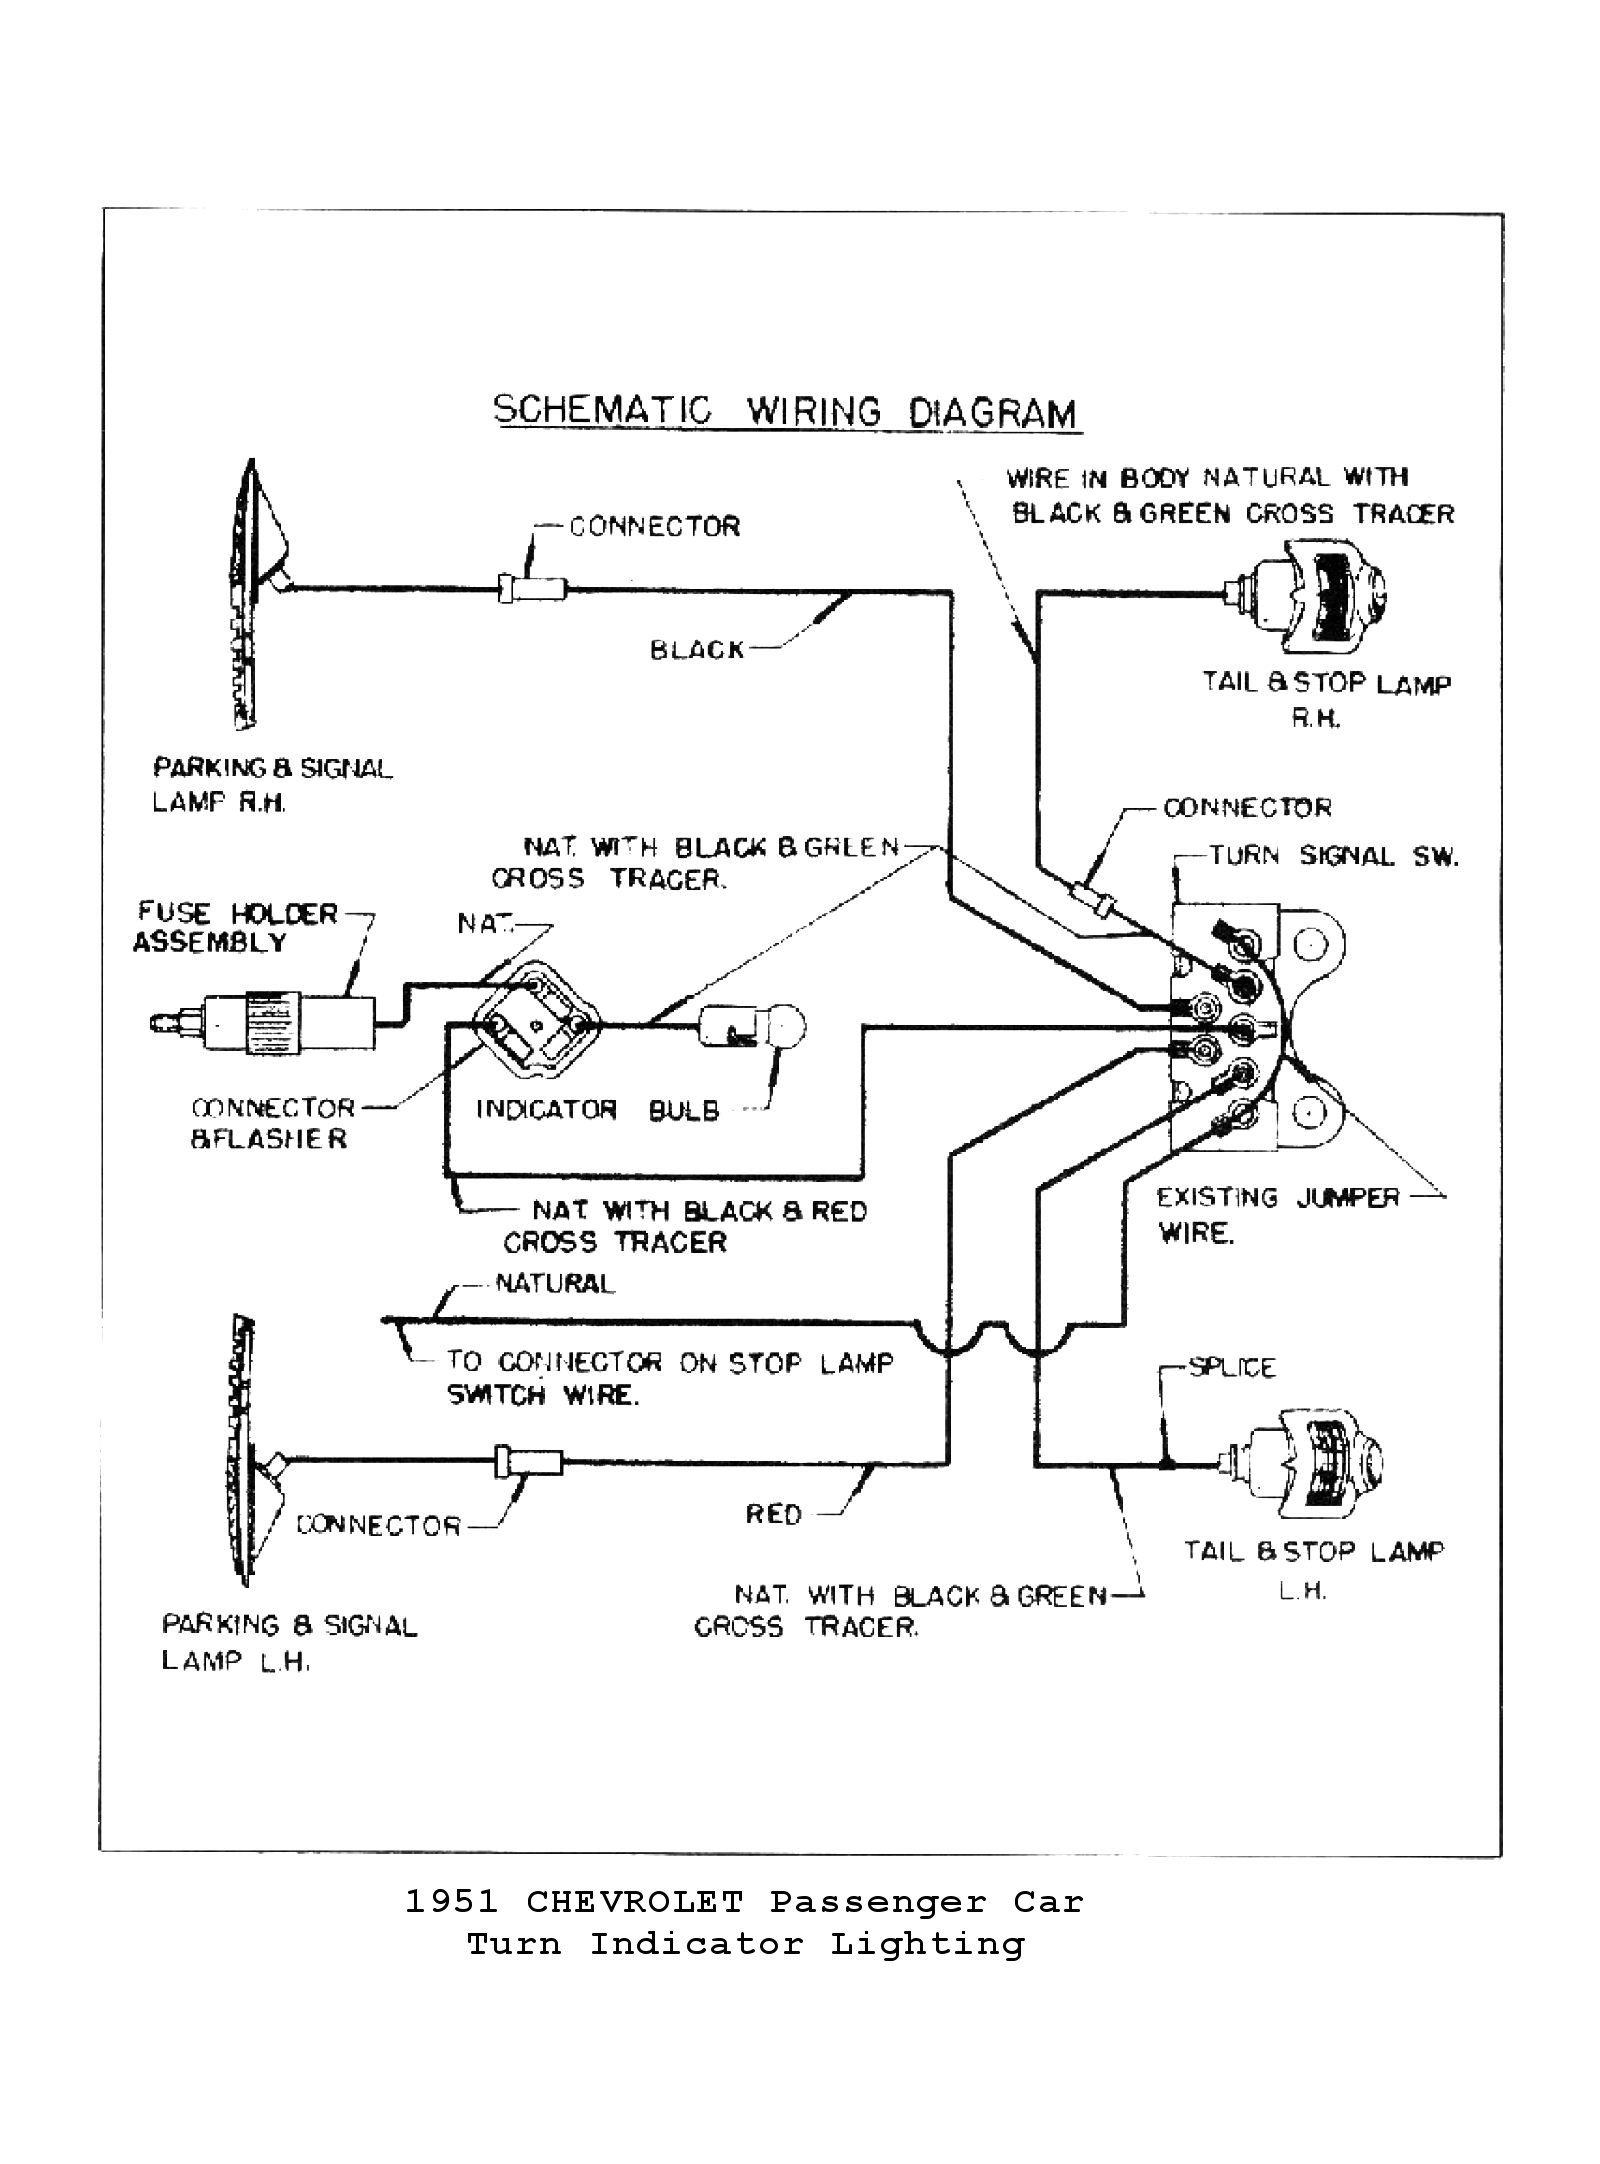 Diagram In Pictures Database  1954 Gm Turn Signal Wiring Diagram Just Download Or Read Wiring